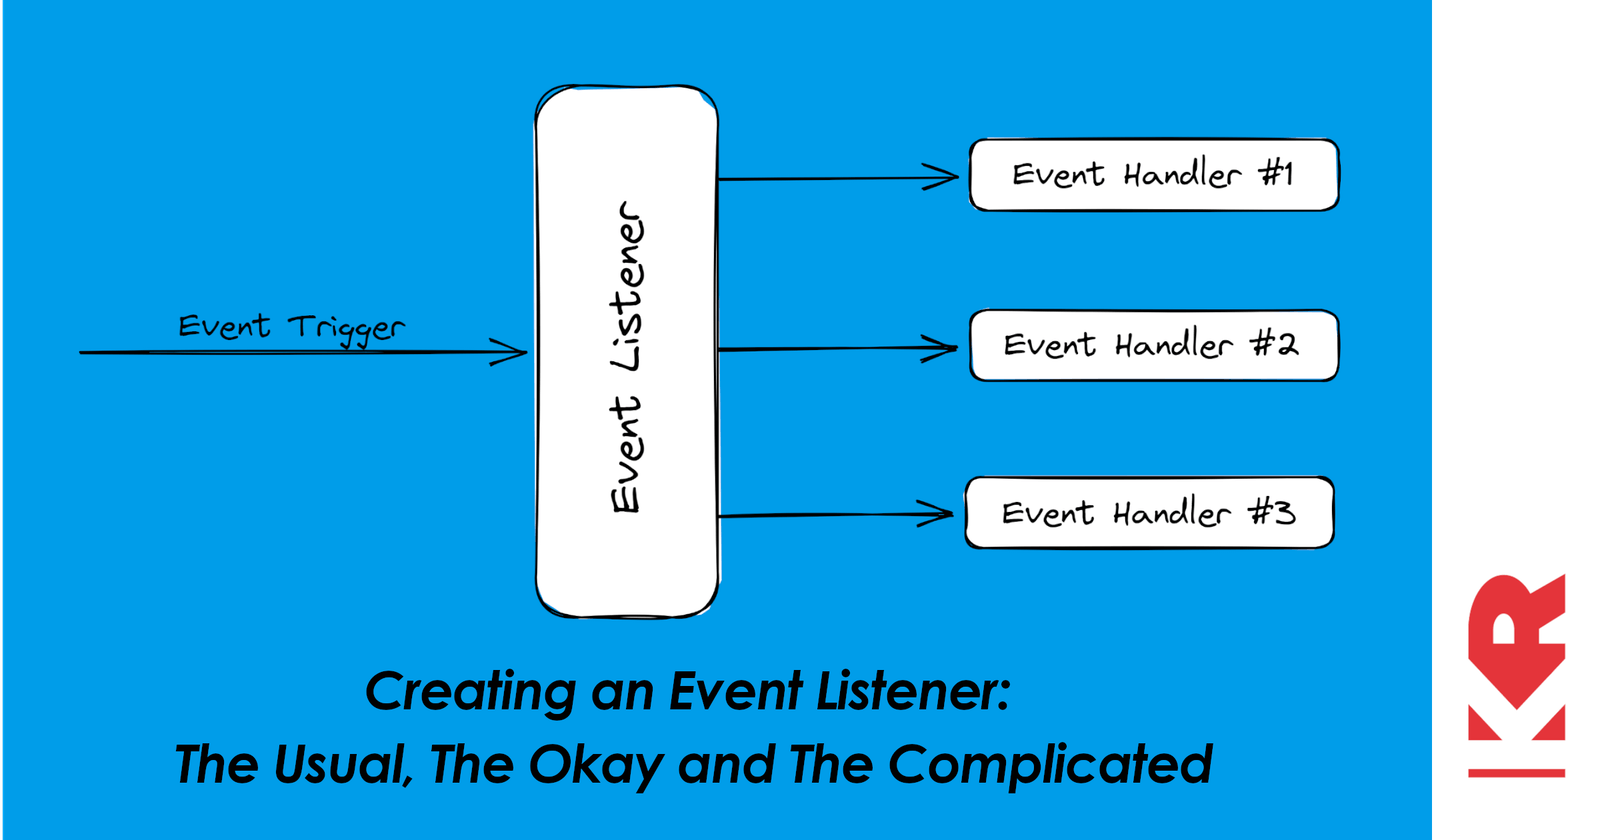 Creating an Event Listener: The Usual, The Okay and The Complicated